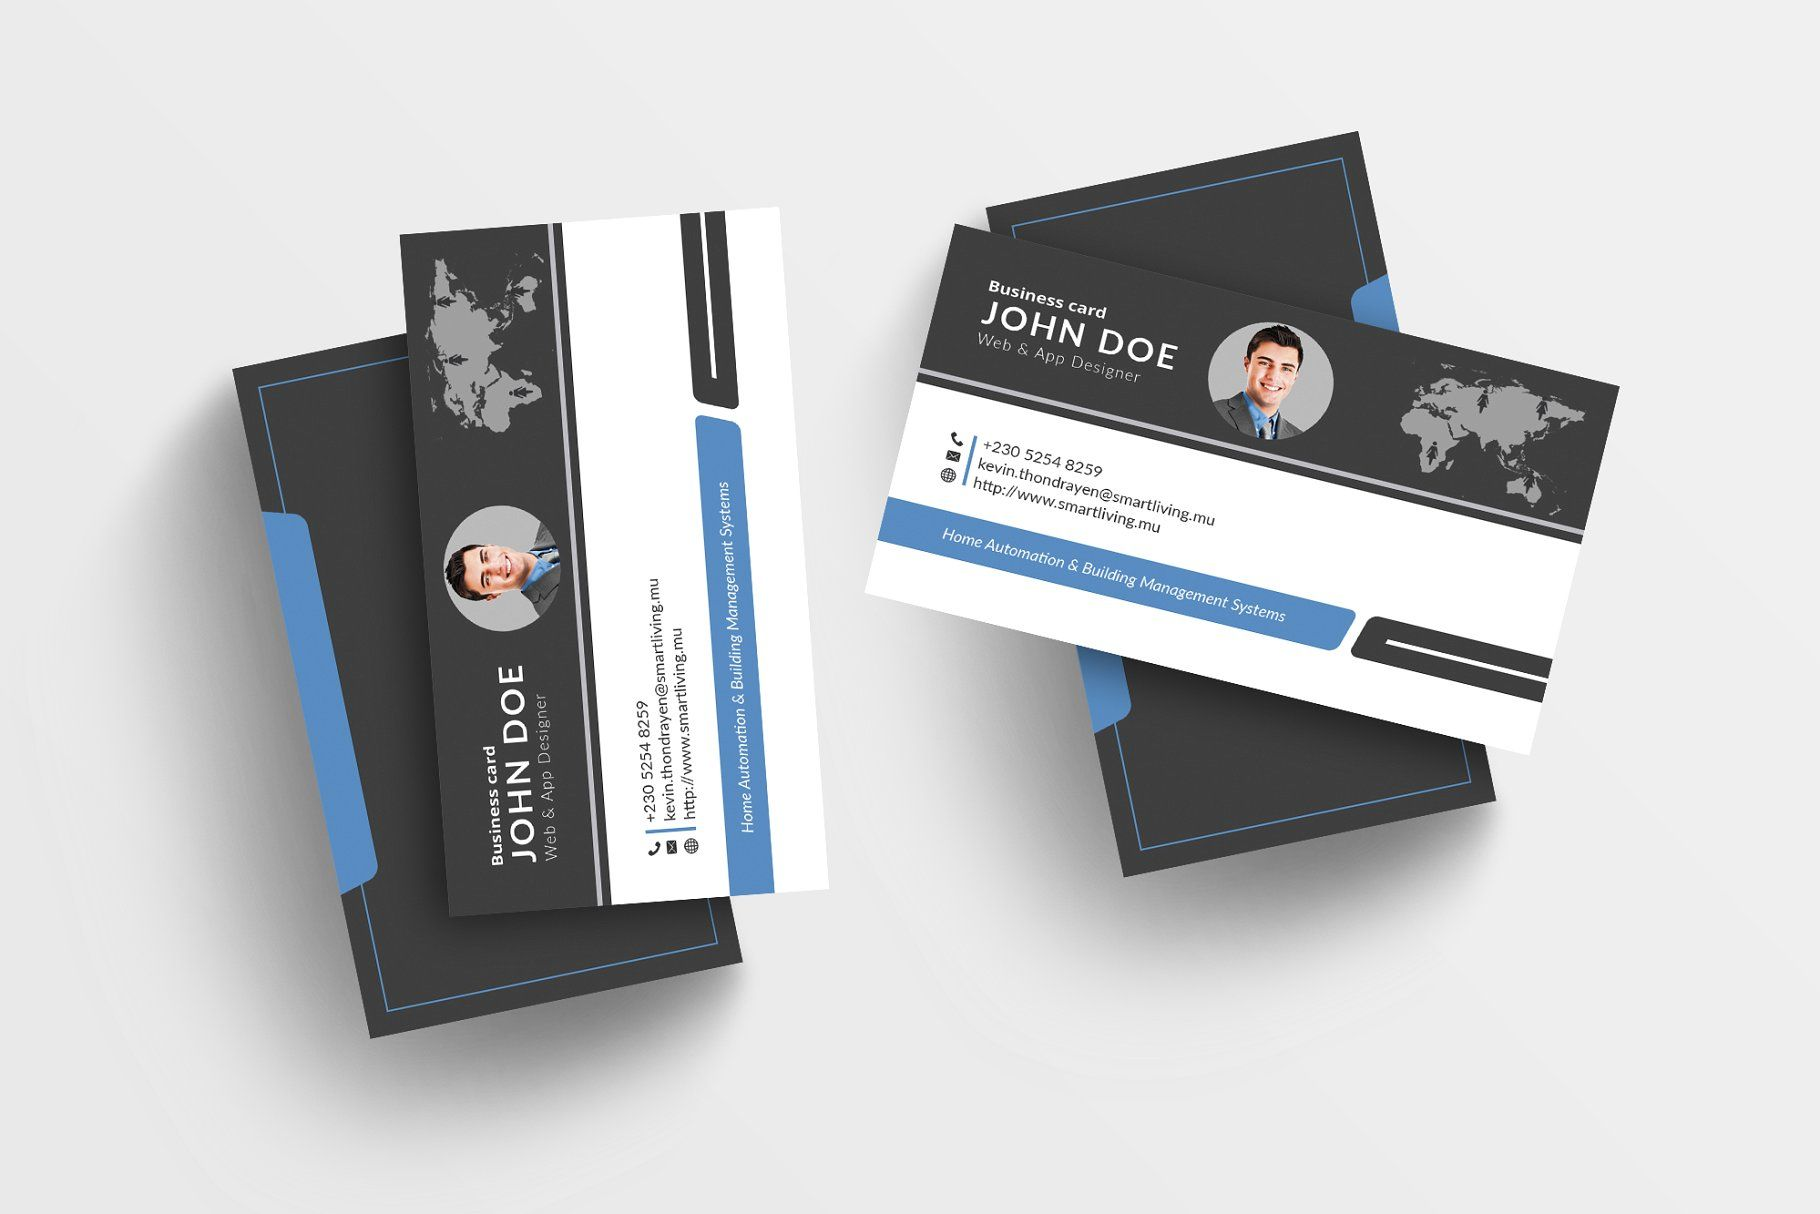 Business Cards Cards Business Templates Card Business Cards Cool Business Cards Business Card Design